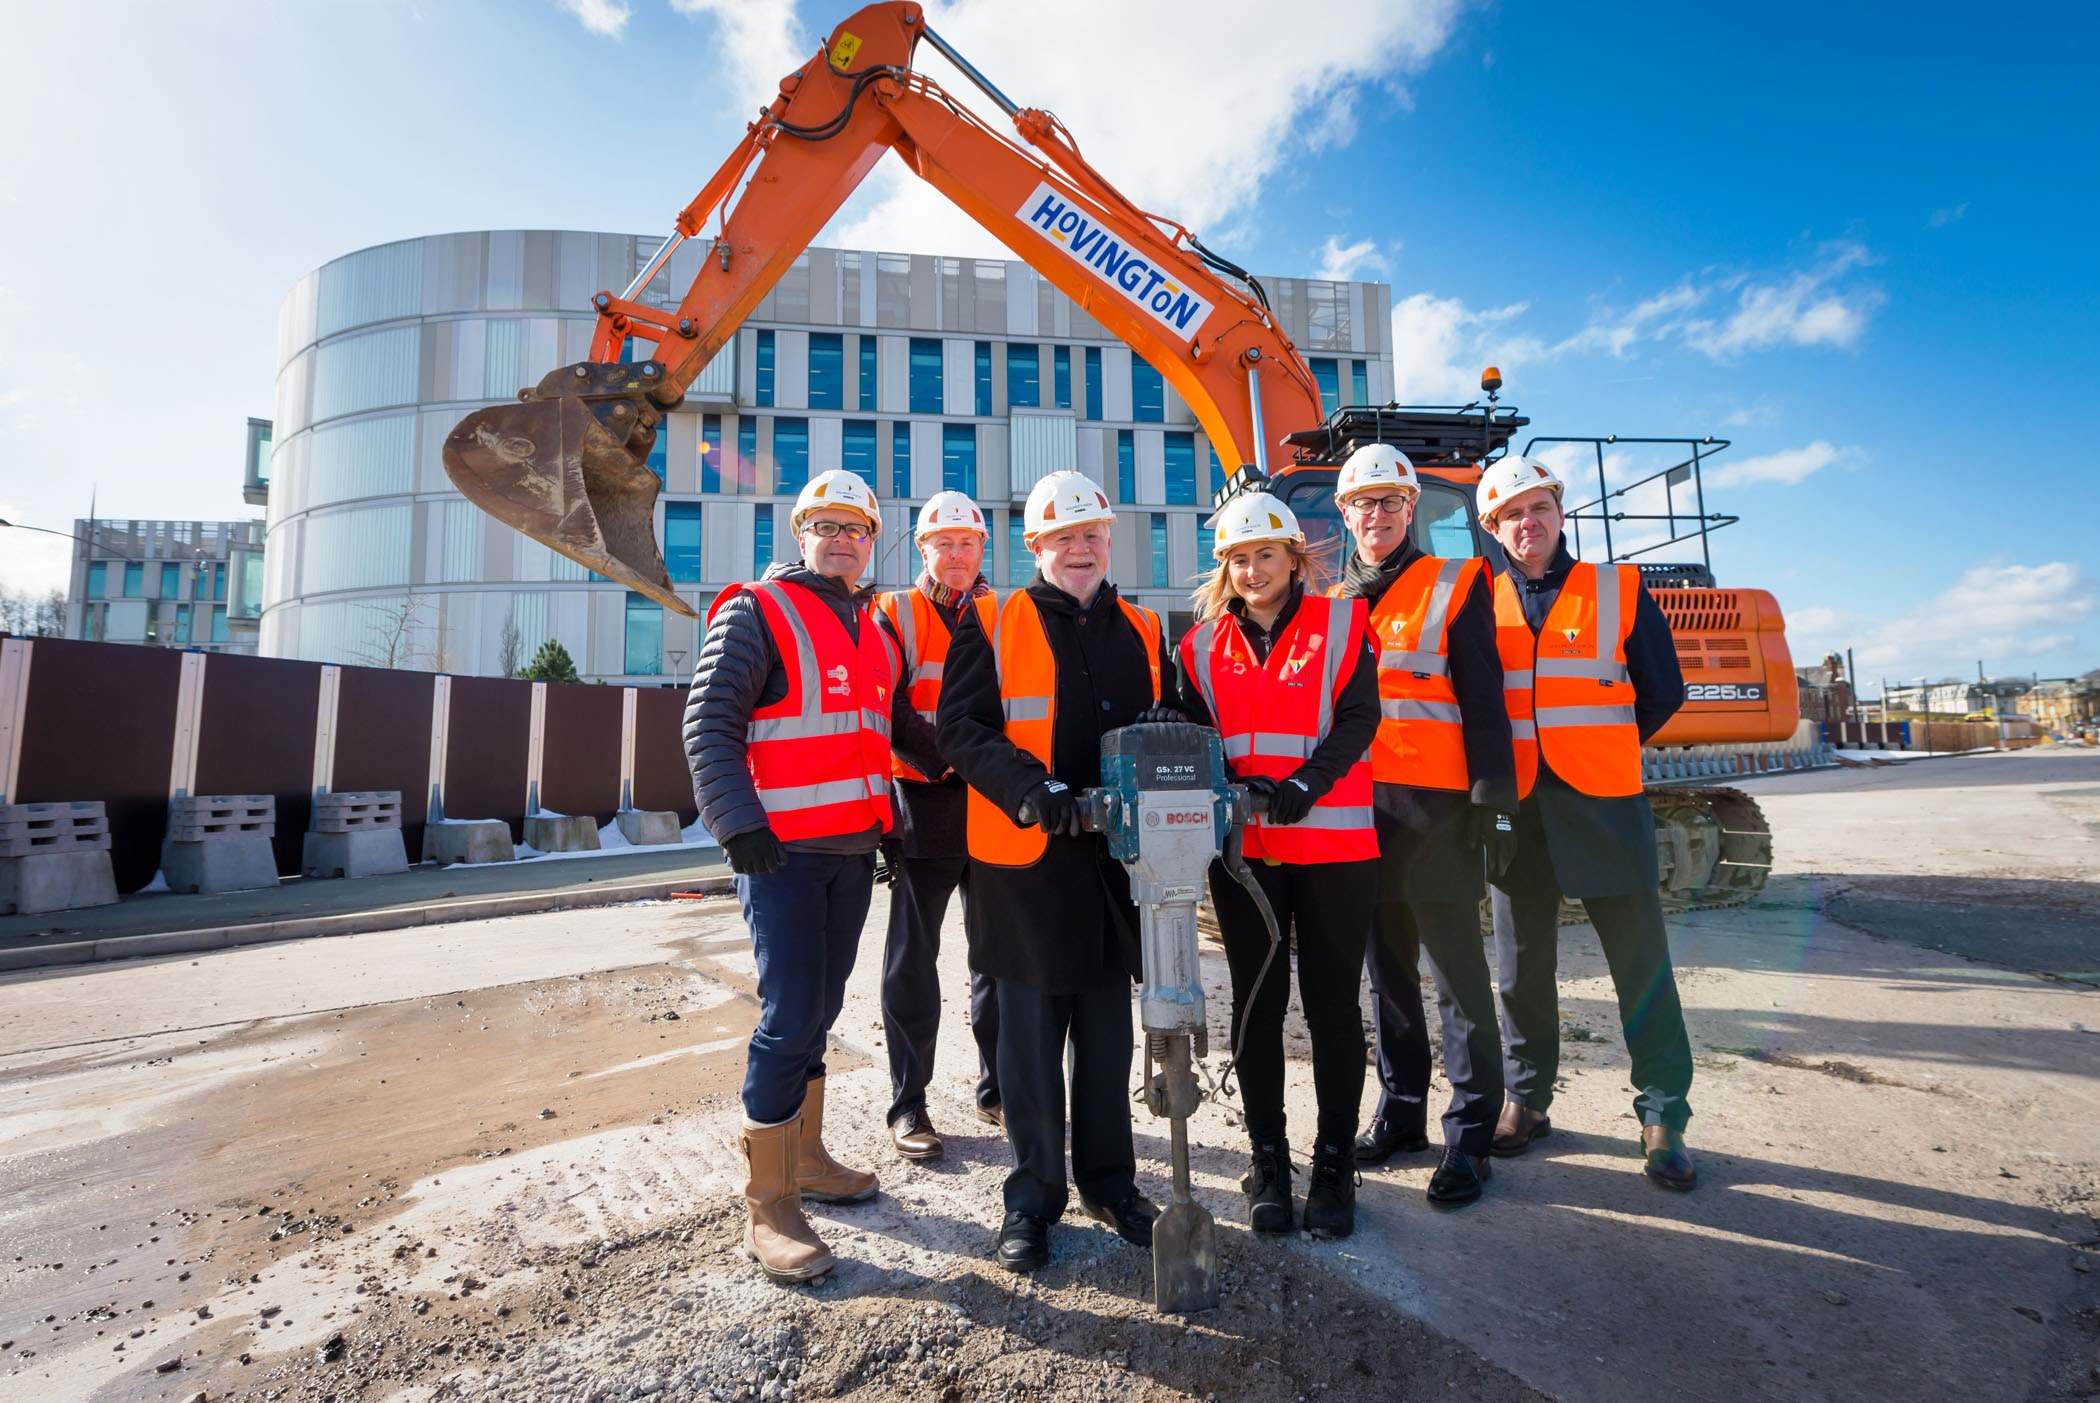 Work starts on new shopping and leisure complex Rochdale Riverside